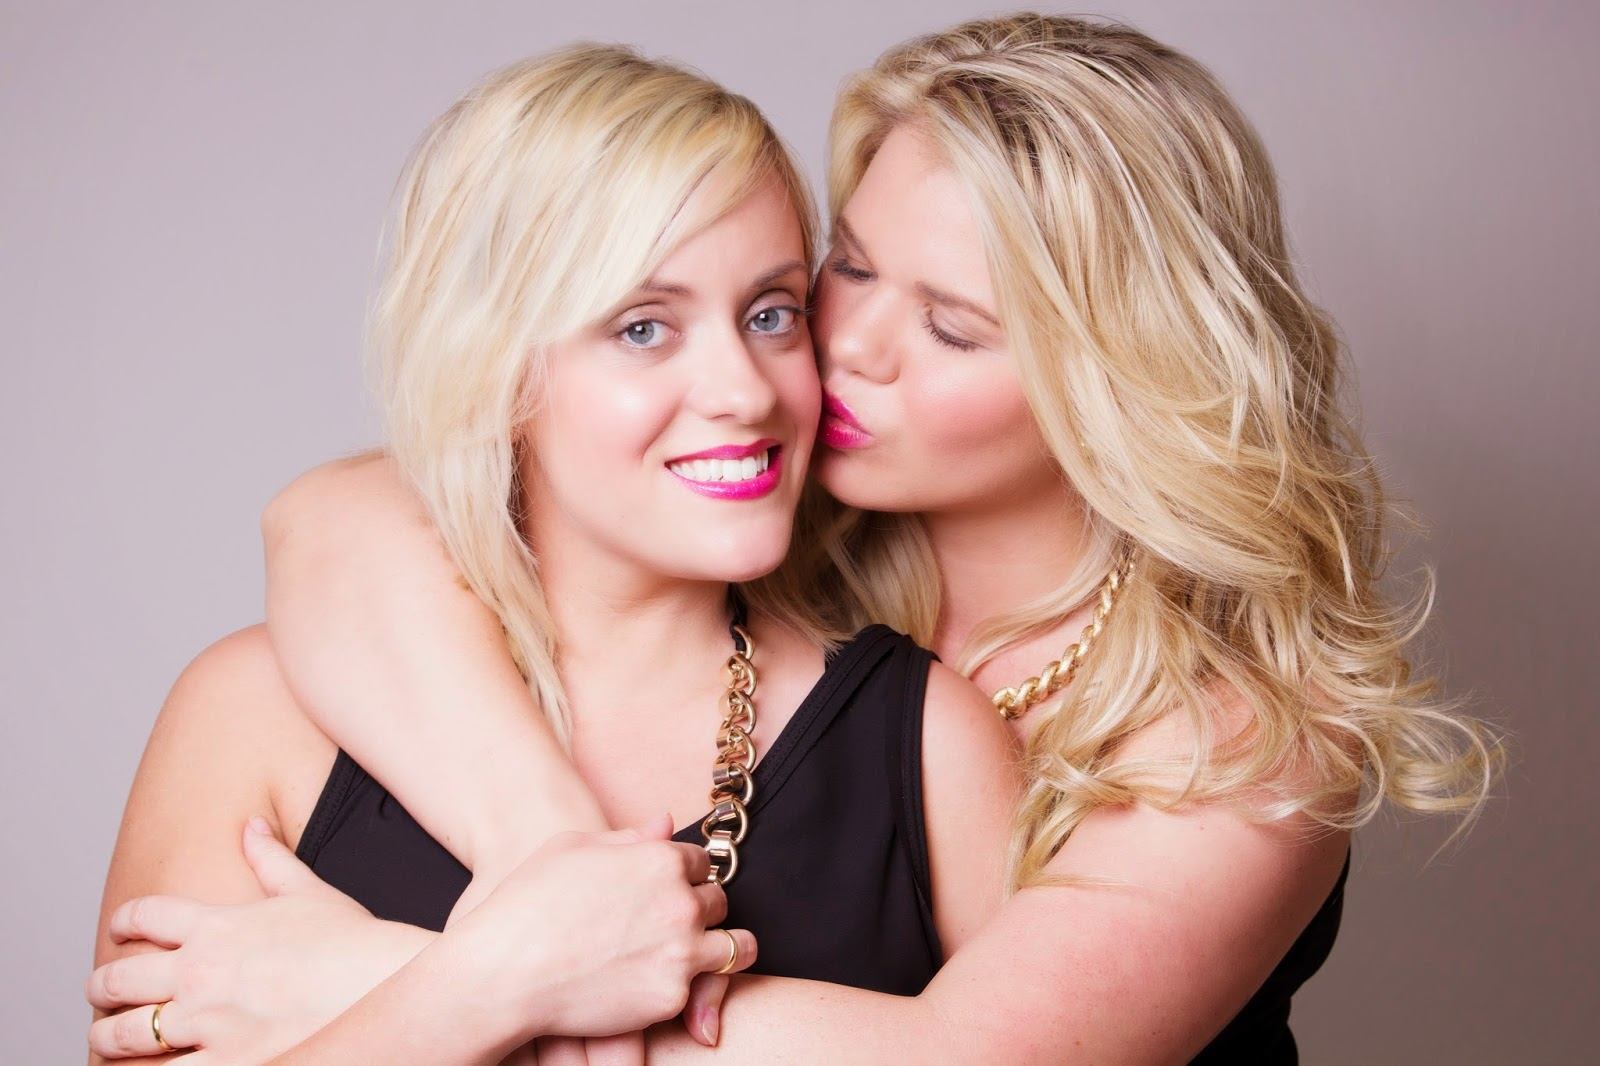 south berwick lesbian dating site Faith focused dating and relationships browse profiles & photos of maine south berwick catholic singles and join catholicmatchcom, the clear leader in online dating for catholics with more.